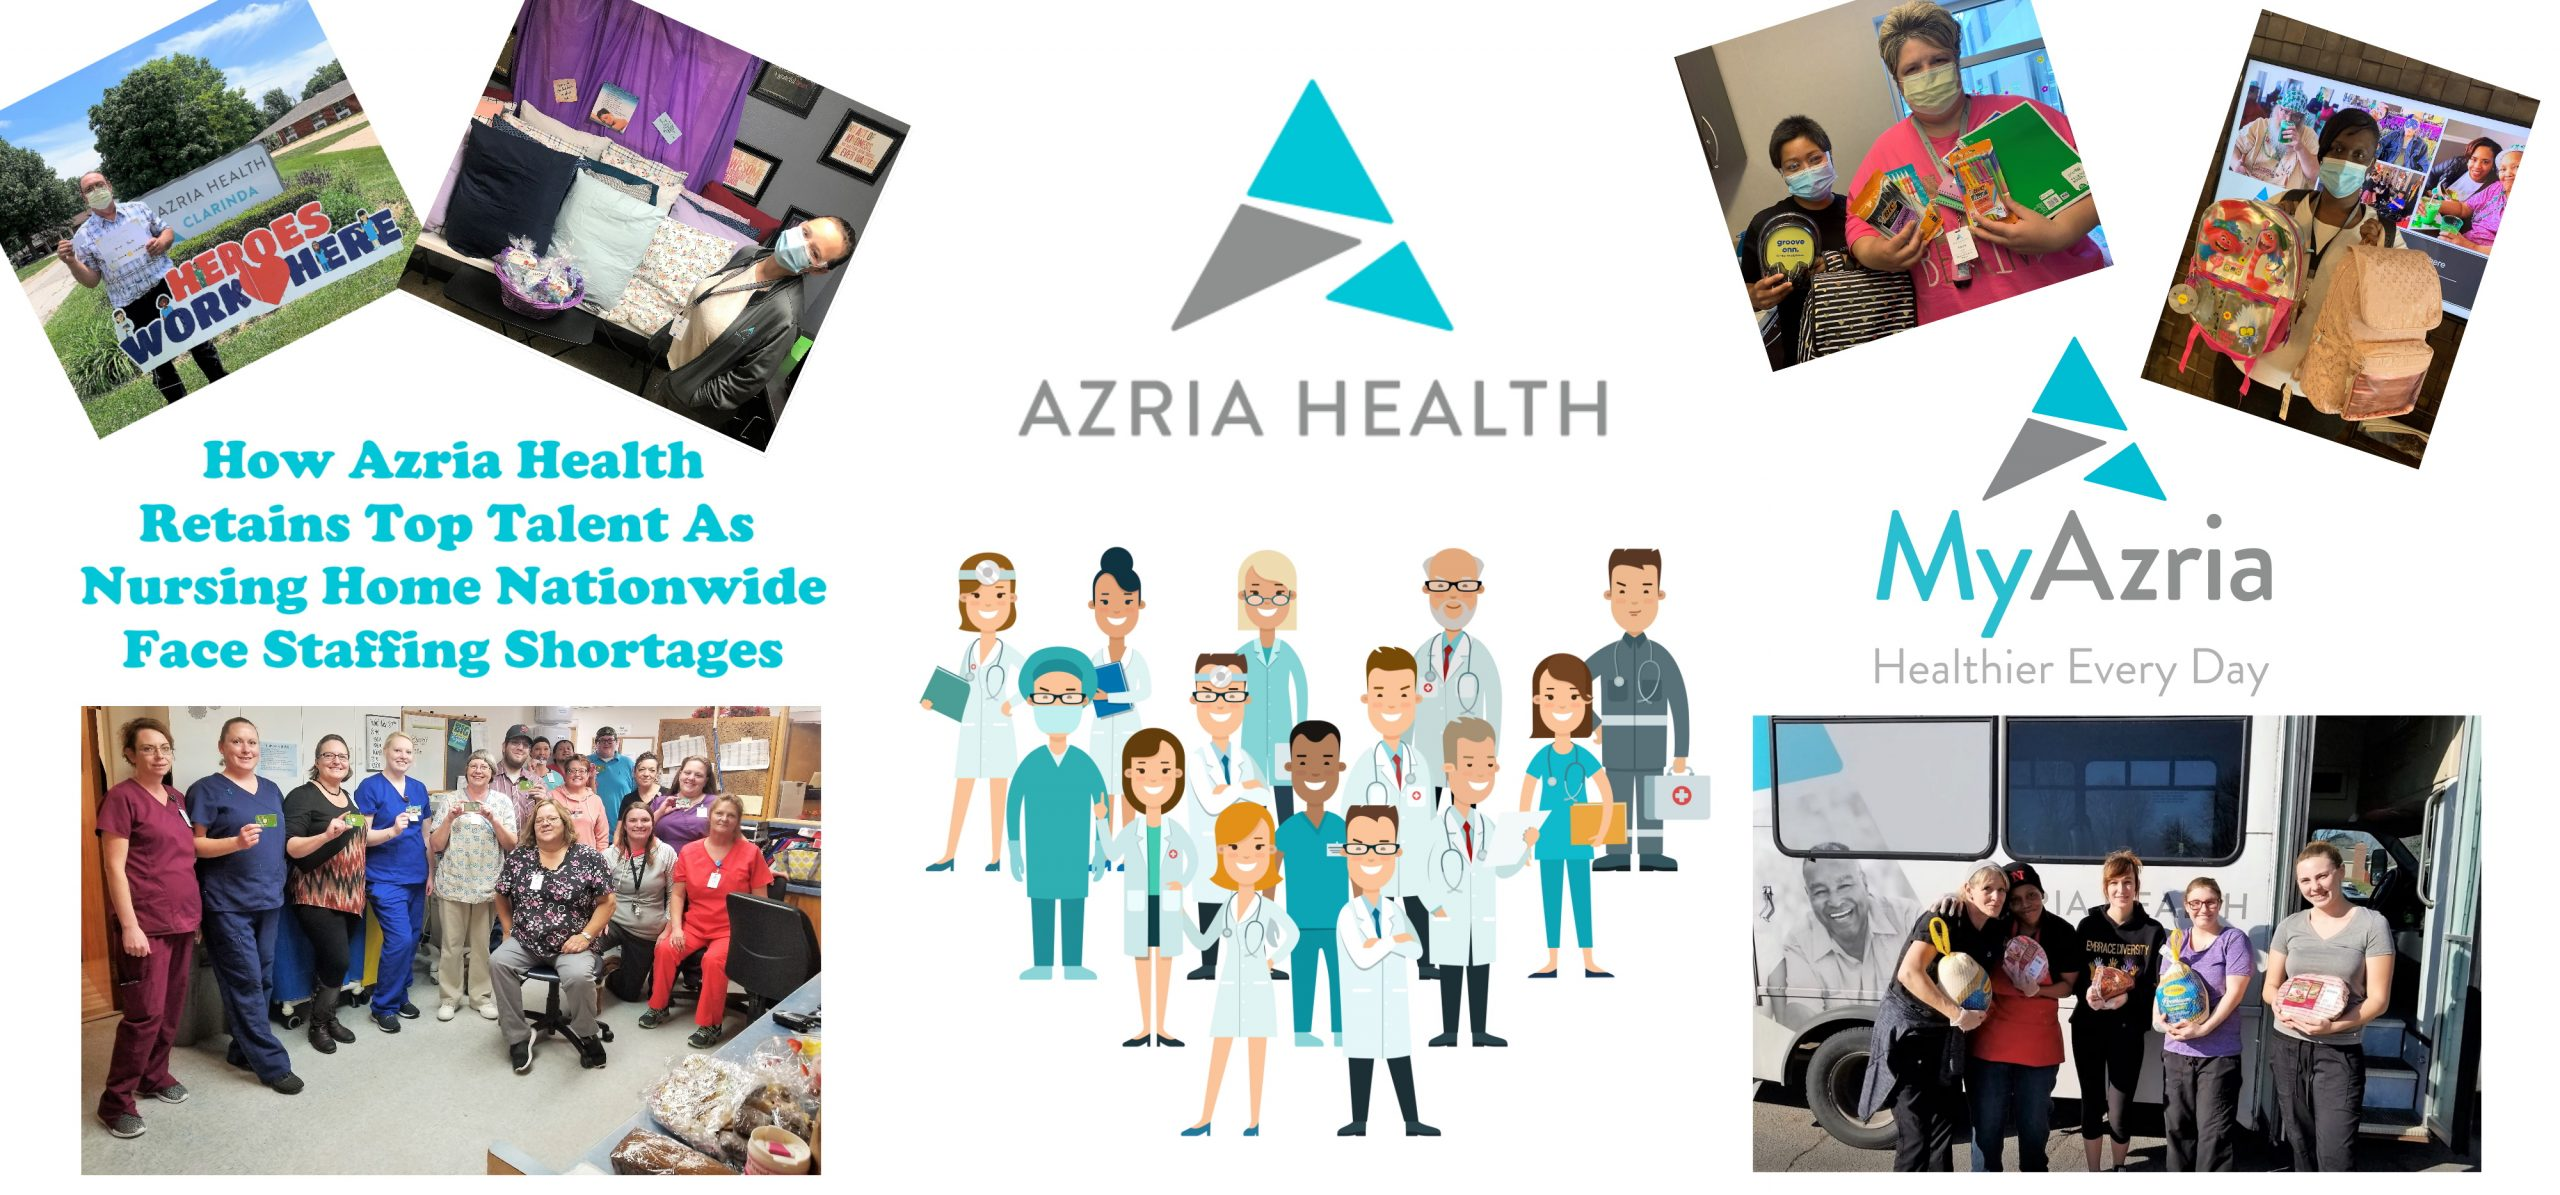 How Azria Health Retains Top Talent as Nursing Homes Nationwide Face Staffing Shortages